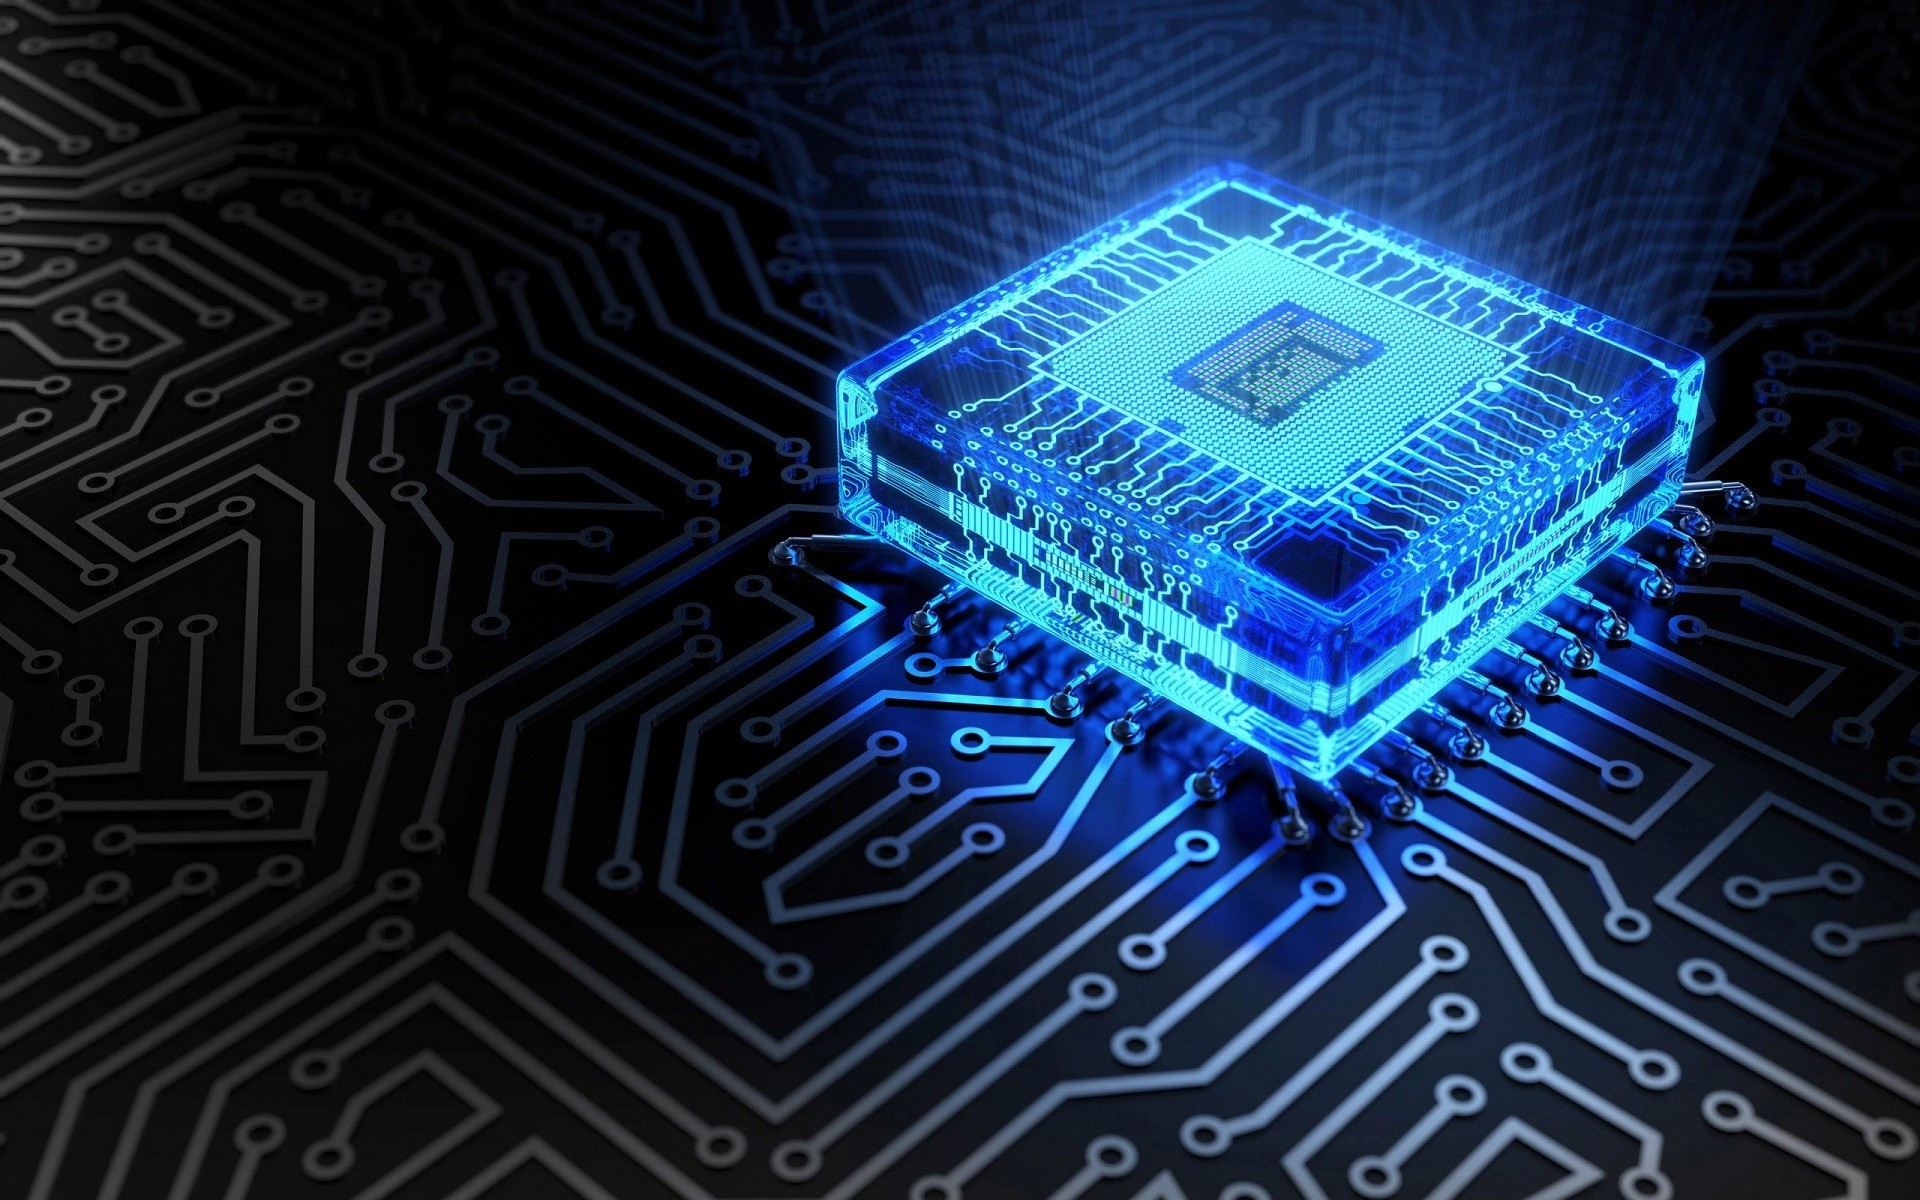 Electronics Wallpapers Hd: Electronics Wallpapers HD (74+ Images